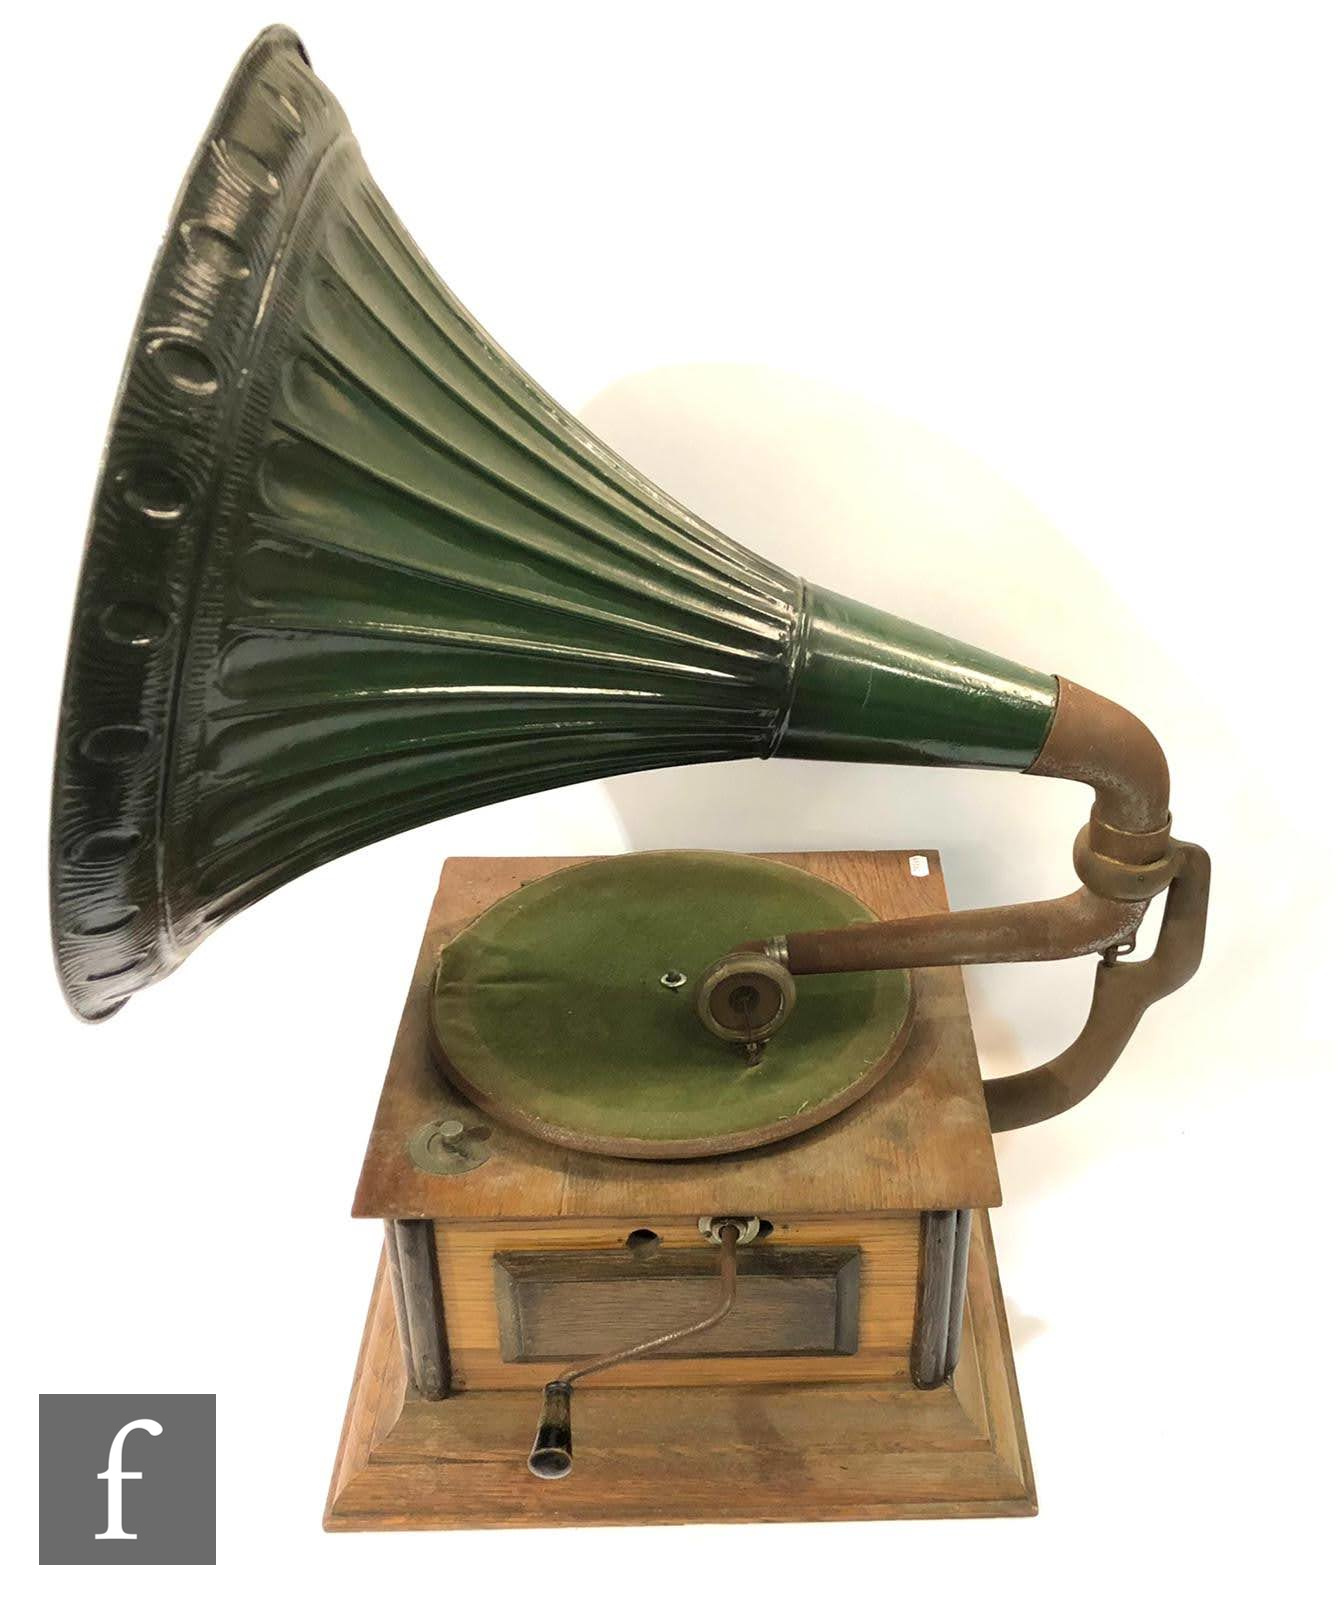 An Academy oak cased wind up horn gramophone with green tin horn, complete with winder and